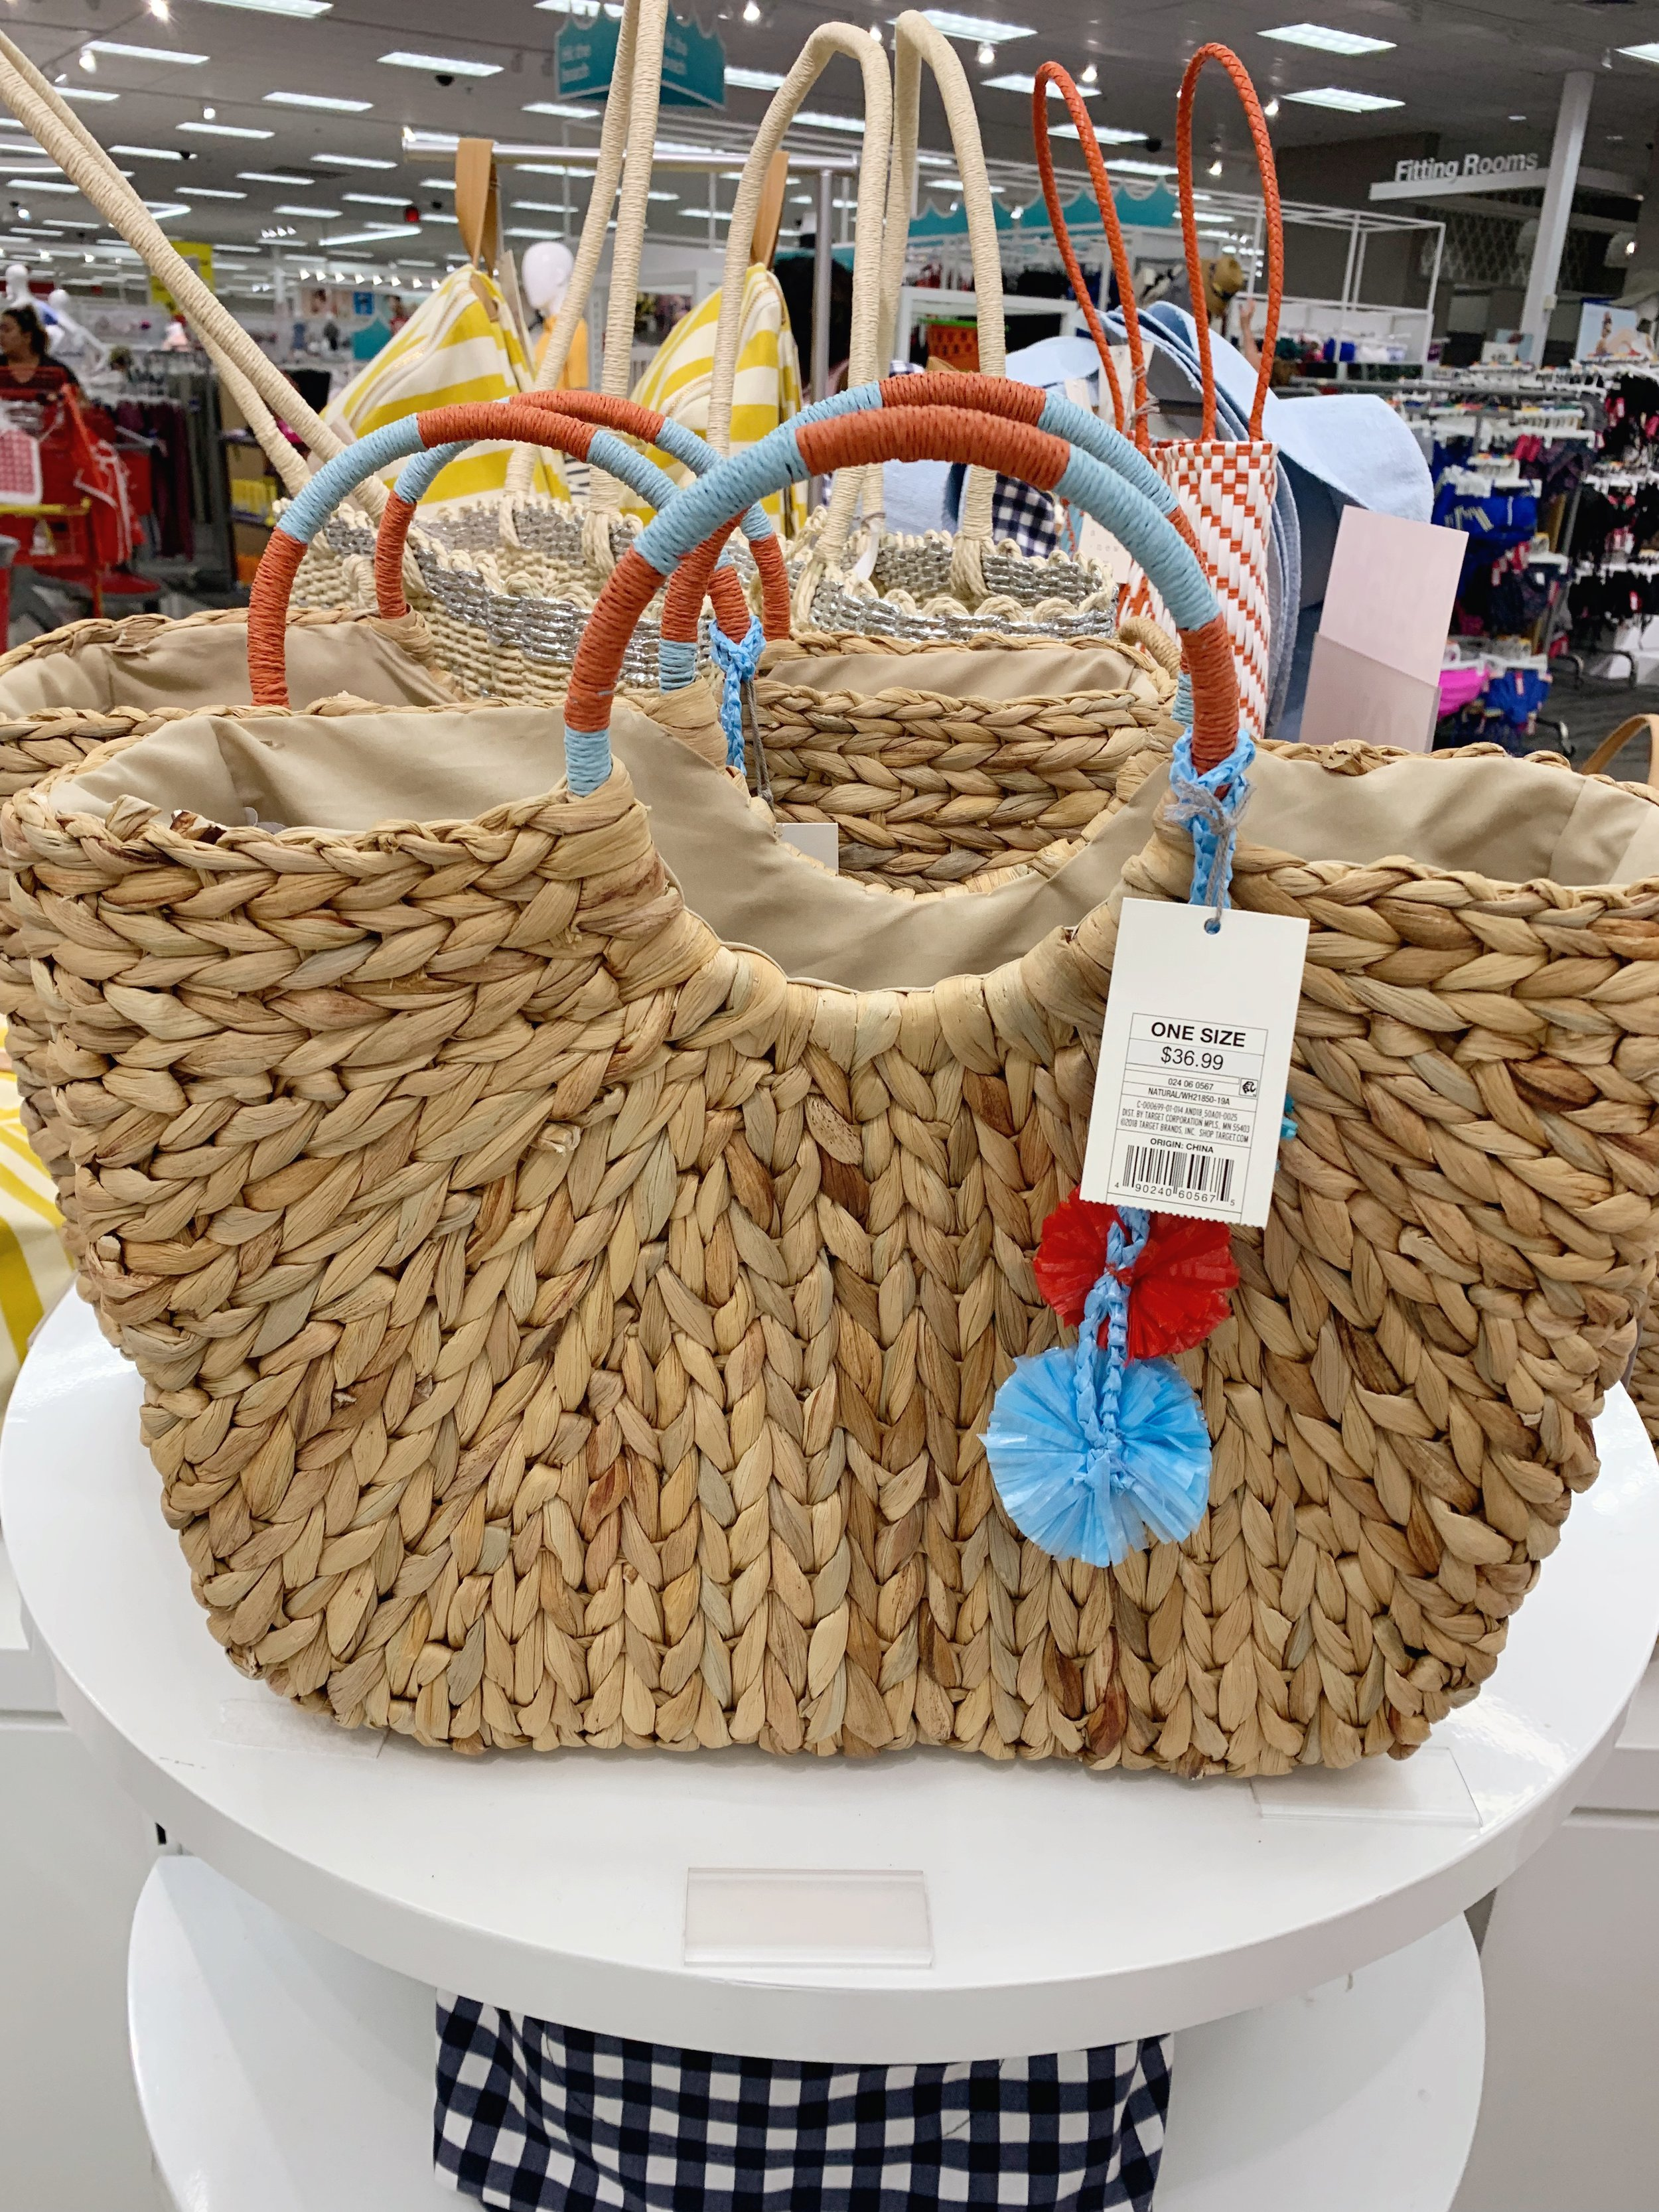 I'm sure you've seen variations of this bag everywhere this spring as it seems to be THE bag right now. I have one and love using it when I don't need to carry my big mom purse. The red and blue detail is a cute touch and its on sale for $25.00